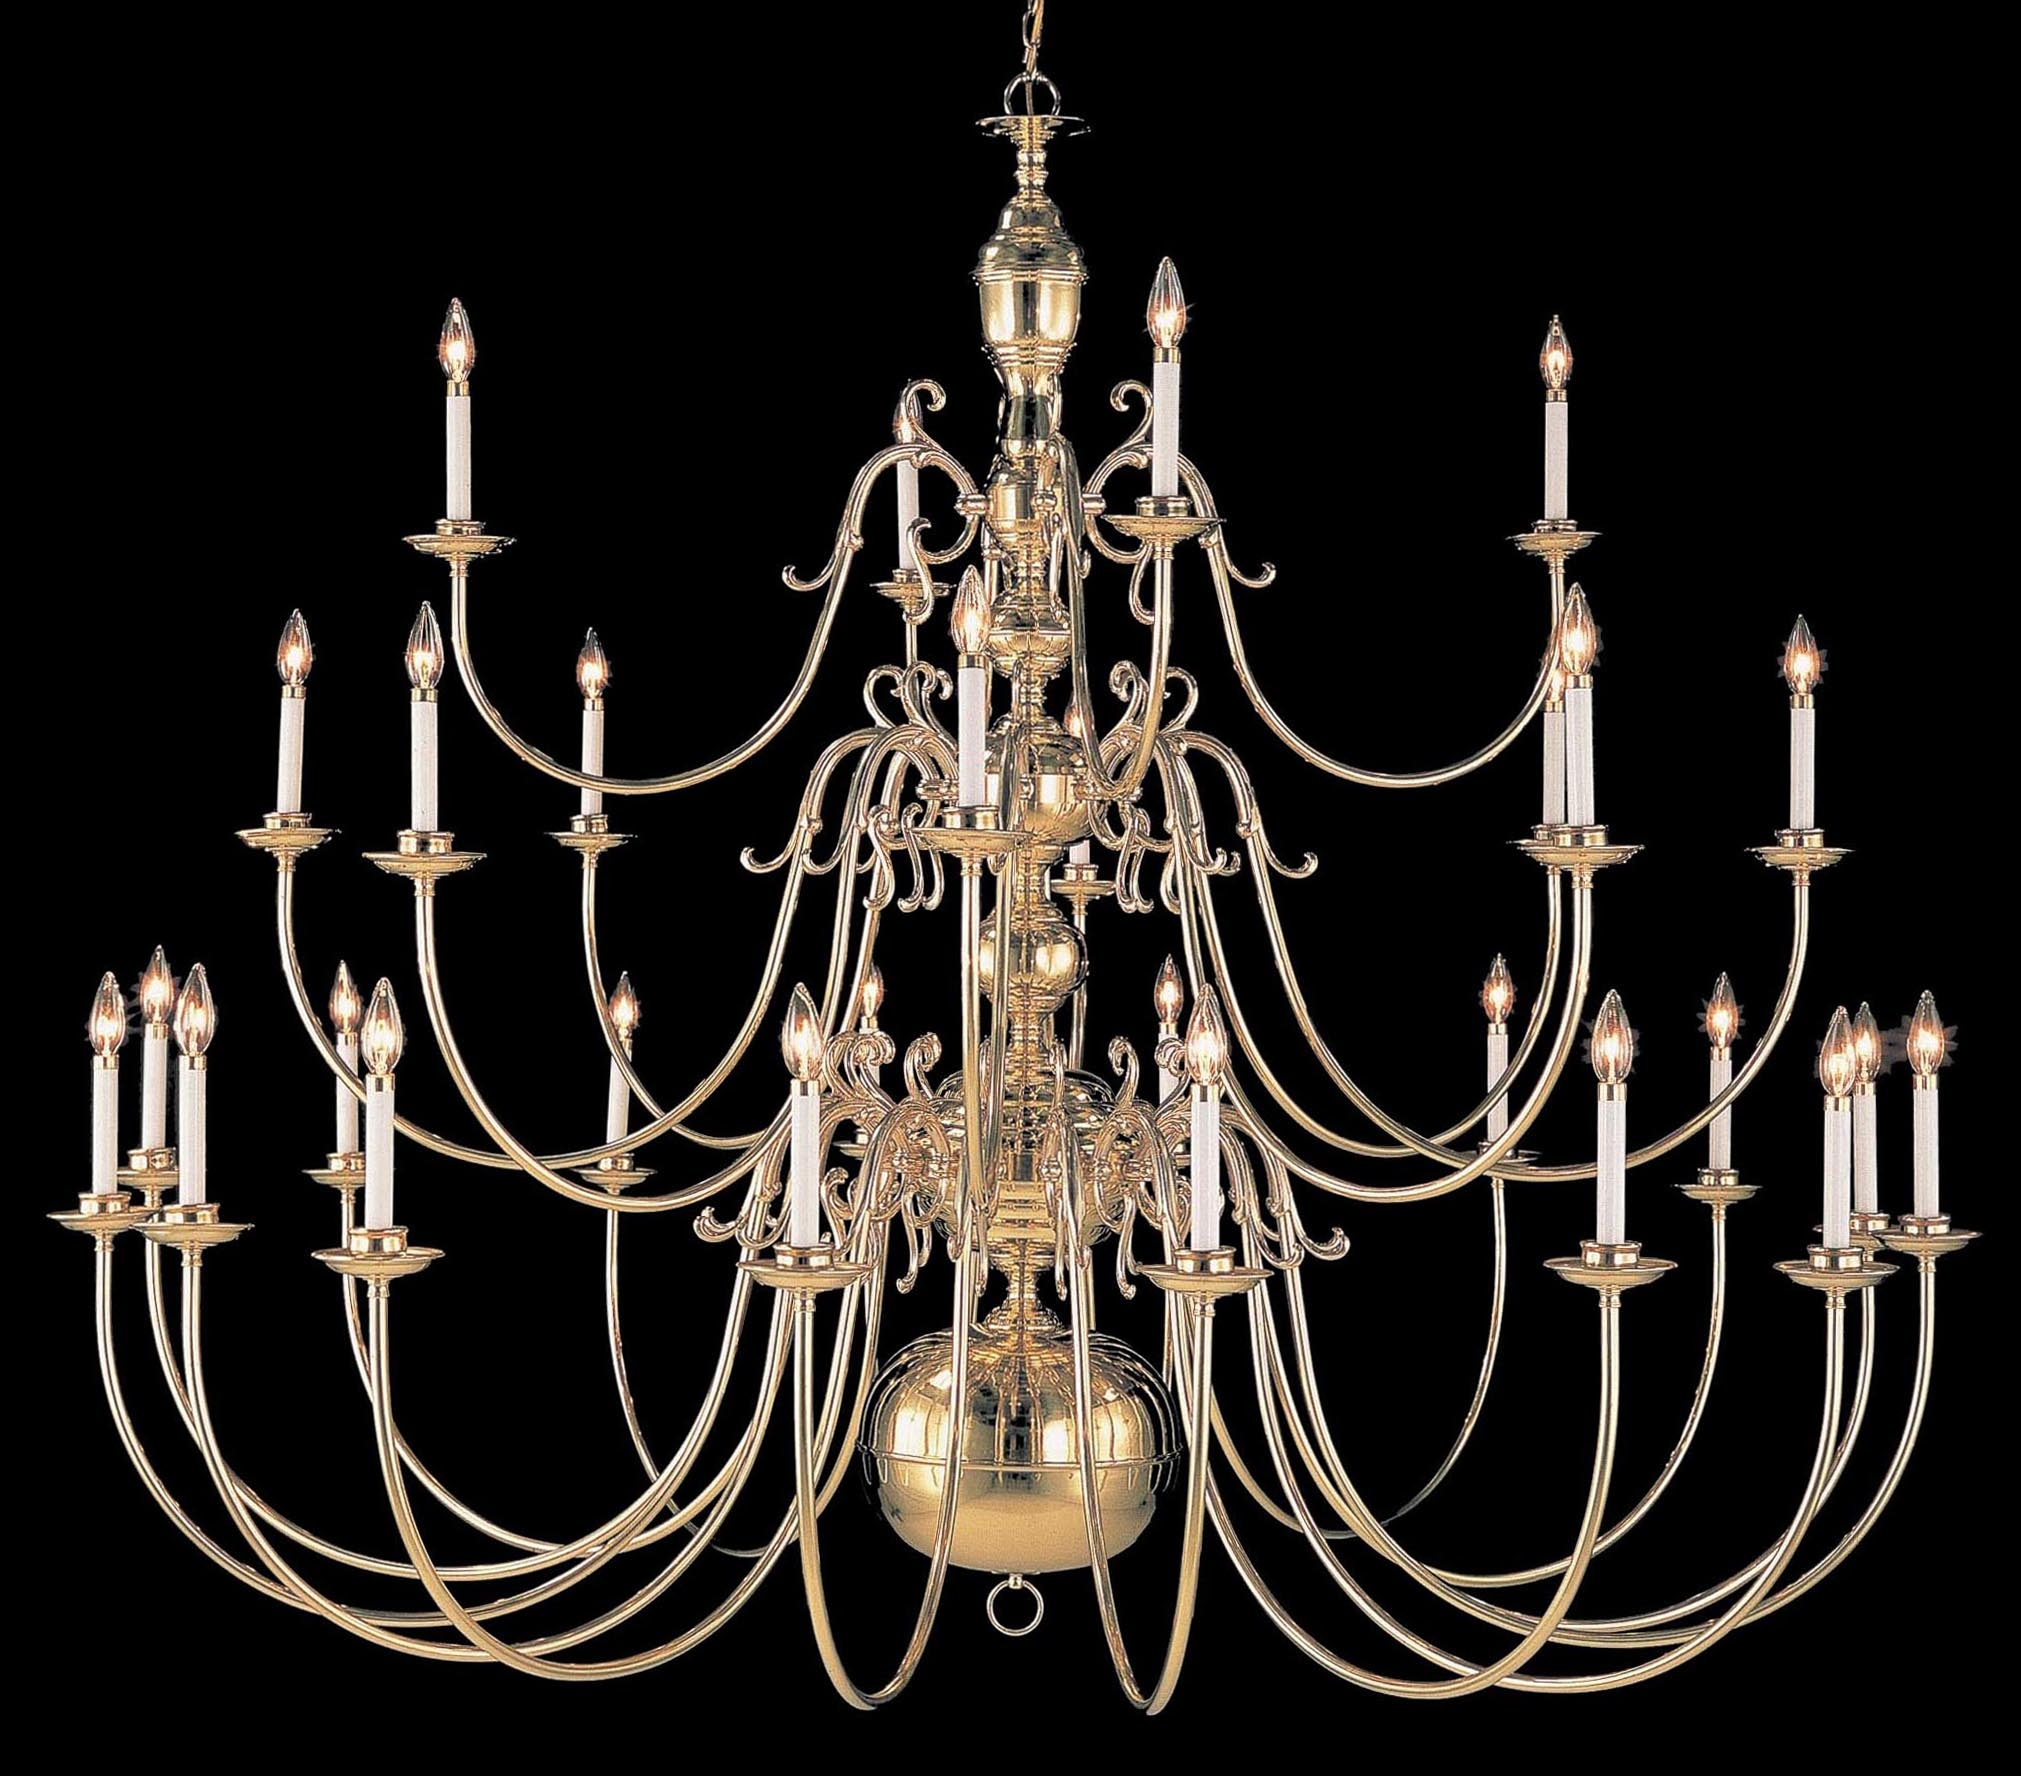 Largelighting Brassbronze Chandeliers Inside Large Bronze Chandelier (Image 9 of 15)